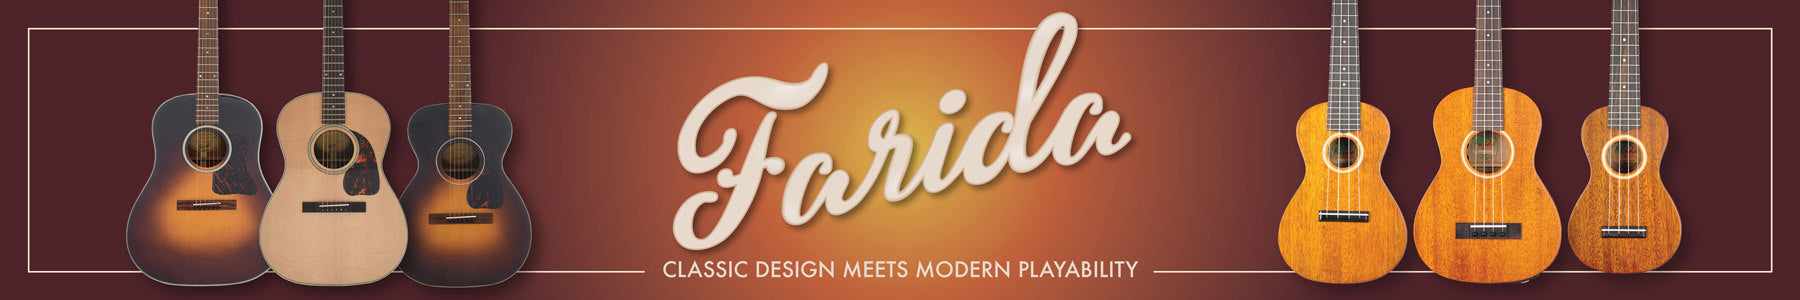 Learn more about Farida